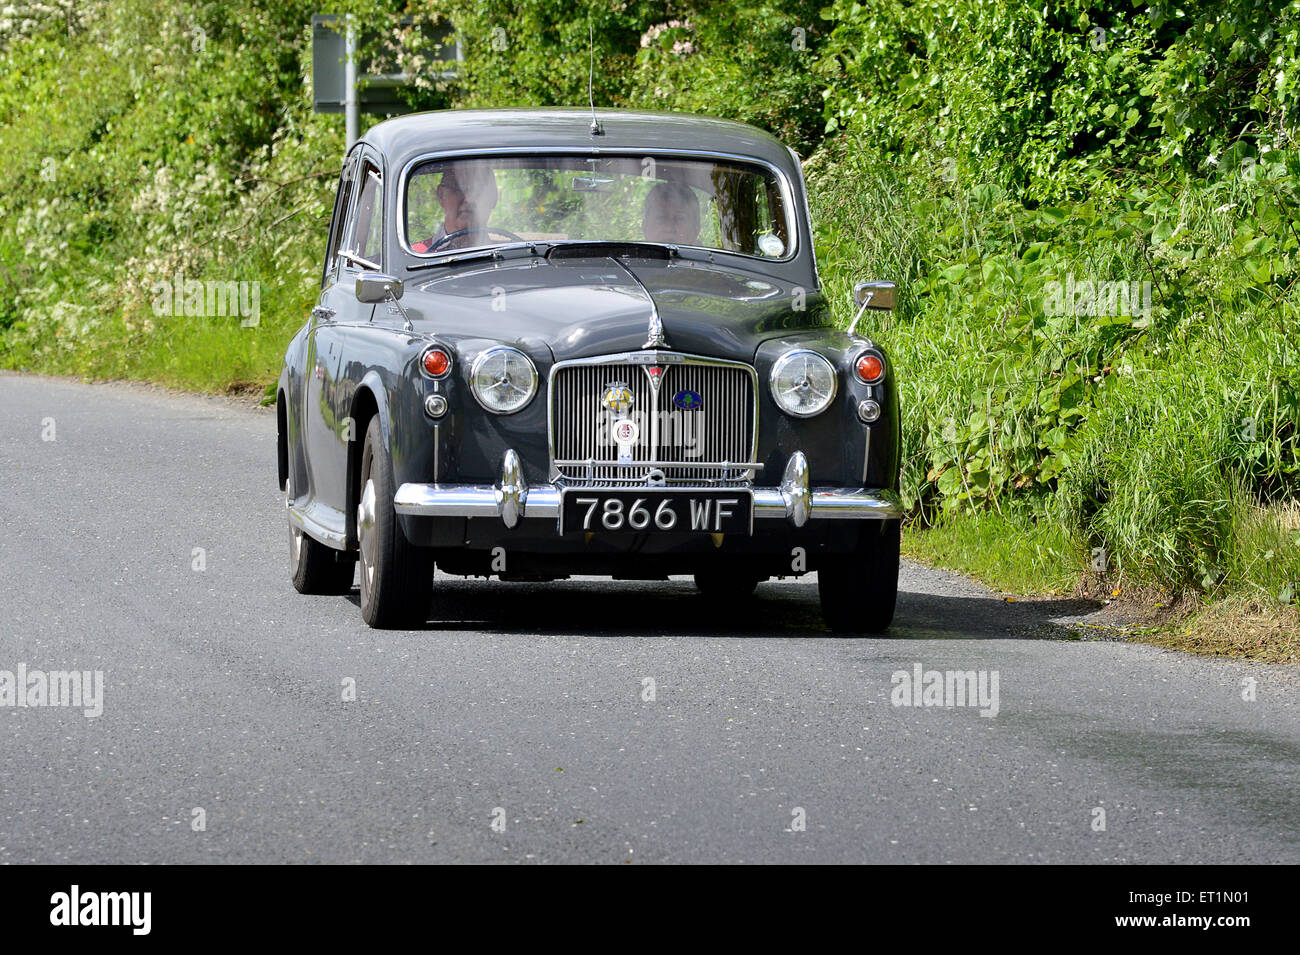 1960s Rover 100 classic saloon car on country road, Burnfoot, County Donegal, Ireland - Stock Image